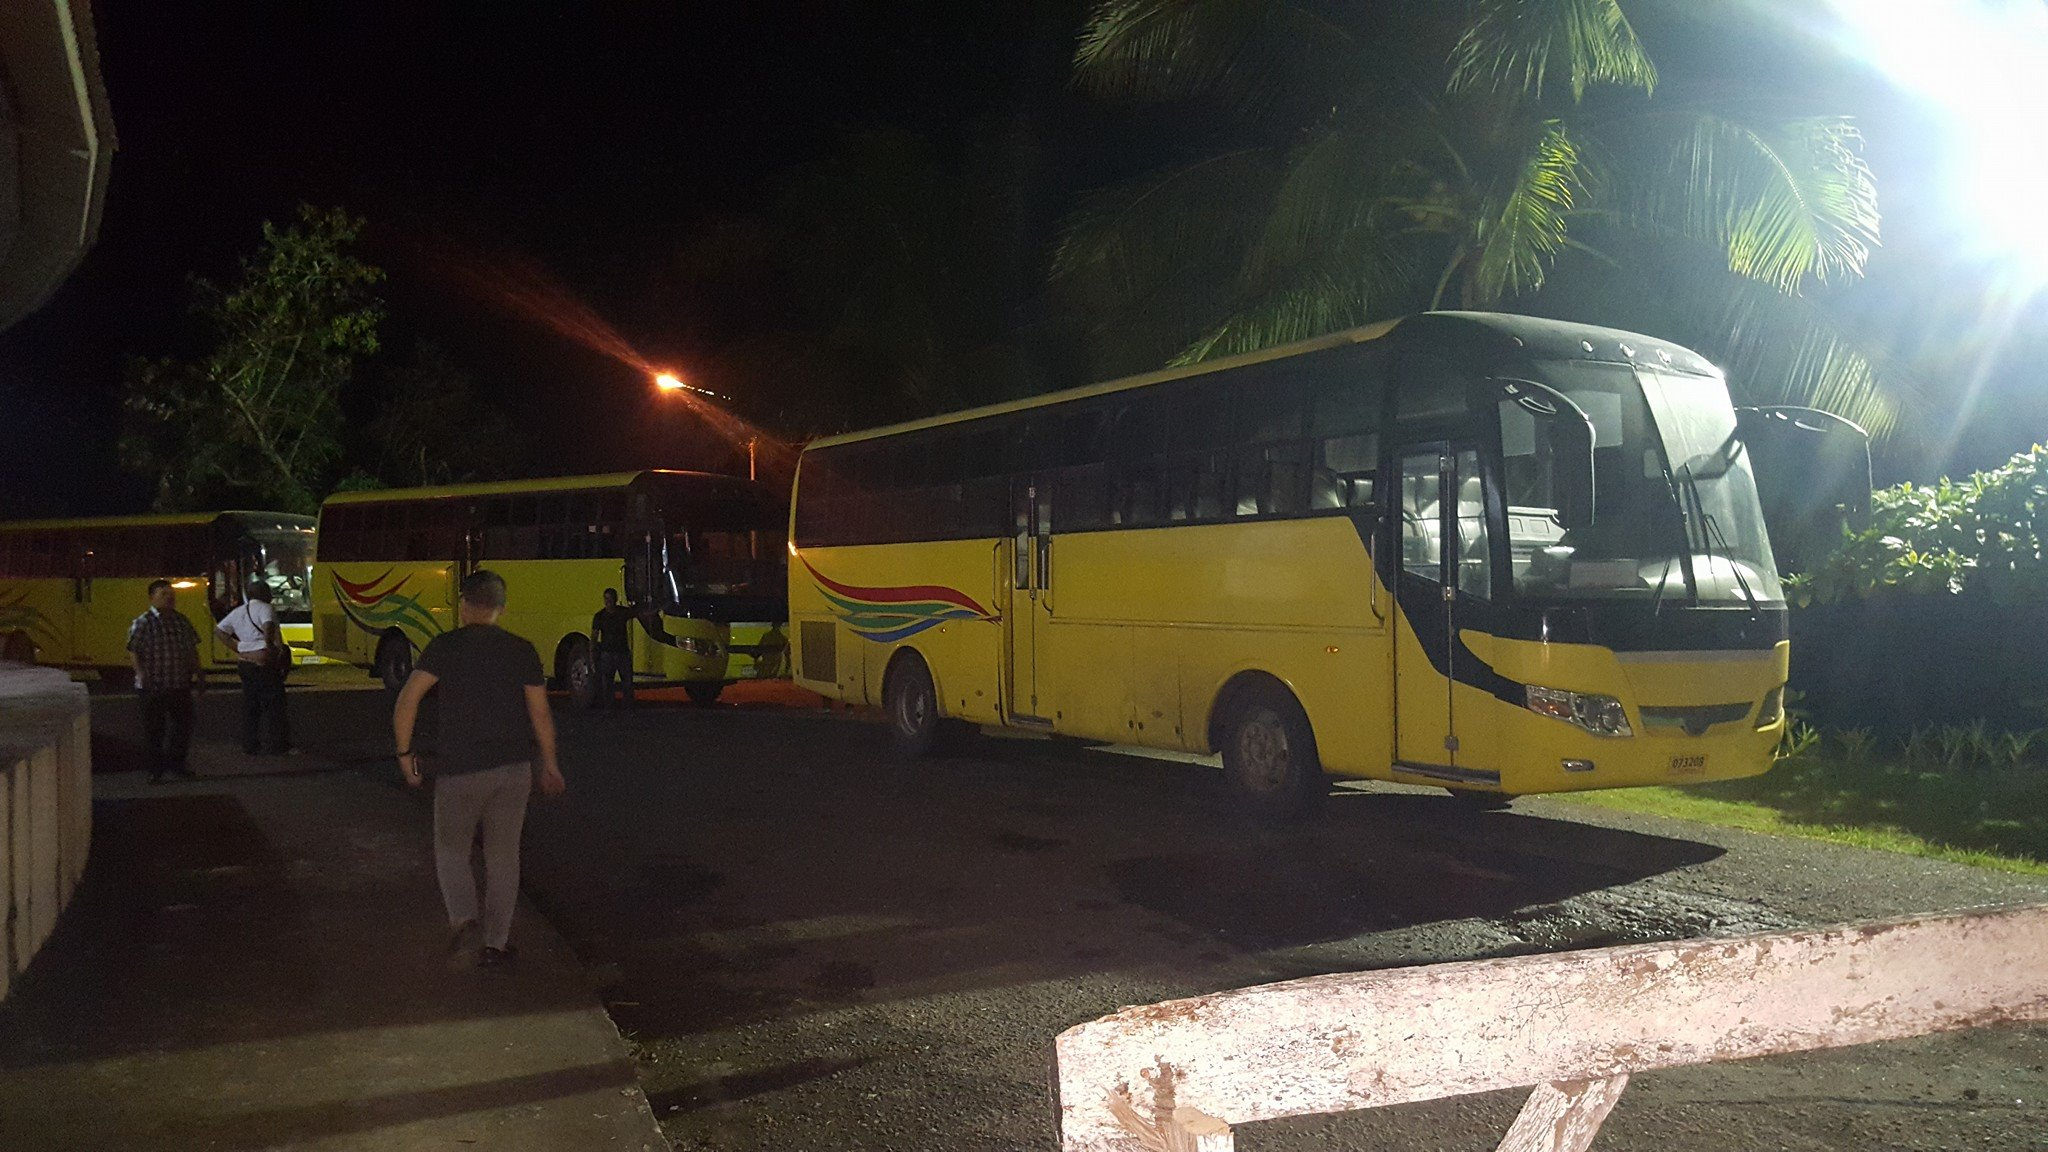 Image of Ceres Liner, one of the Visayas biggest bus company, government's effort to rehabilitate Yolanda survivors, #Yolanda #PartnerForChange #Tacloban, Vallacar Transit Inc., President Duterte on fulfilling his promises, partner for change of President Duterte, government Aquino failed to accomplished